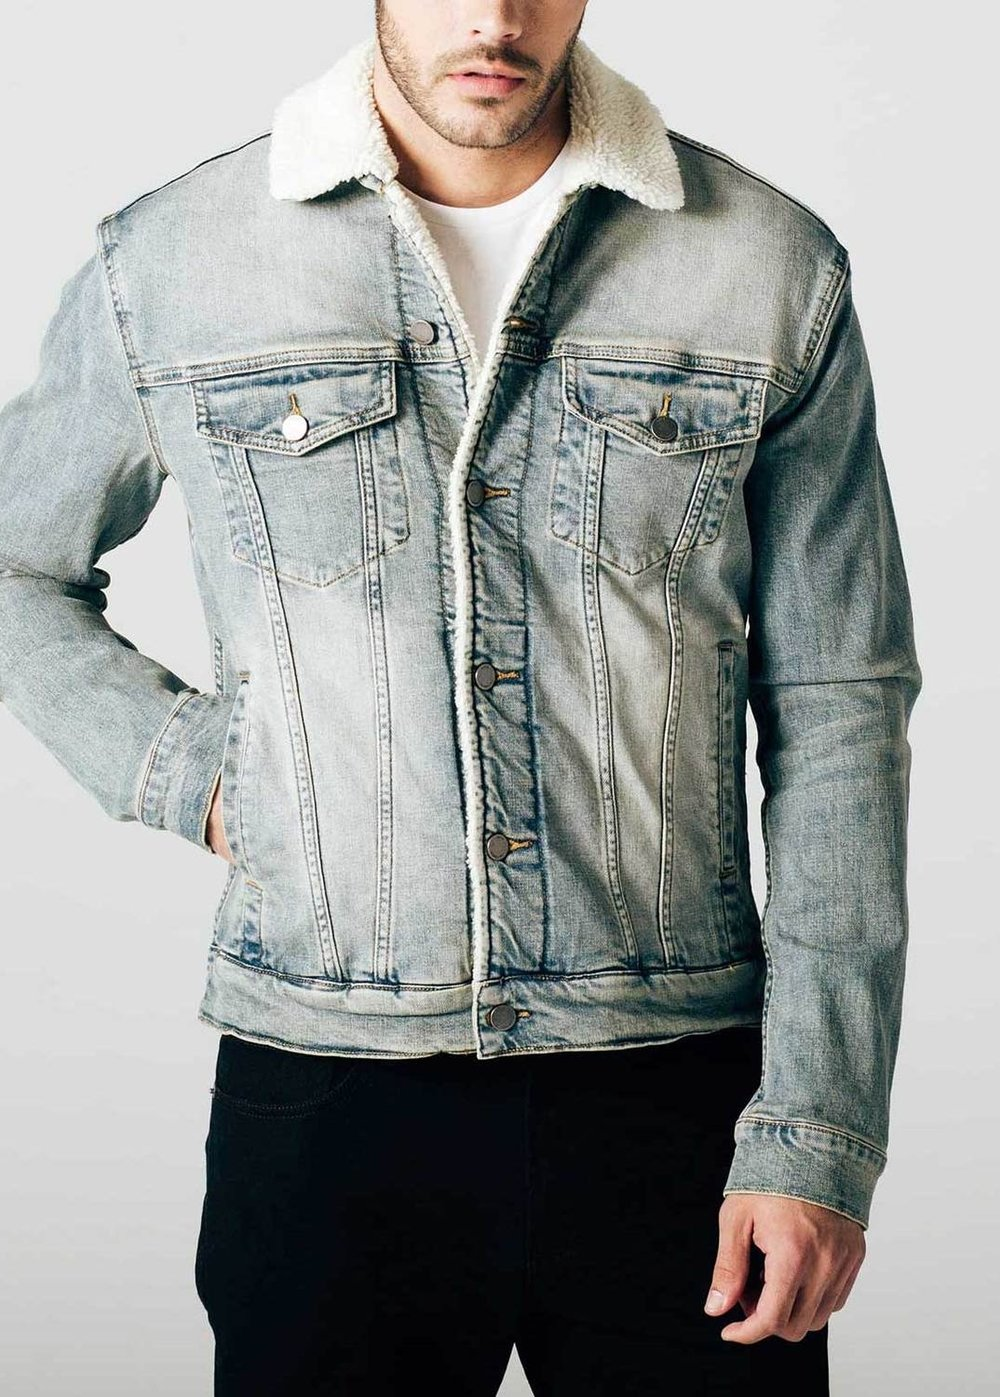 mens-light-vintage-sherpa-lined-denim-jacket-product.jpg